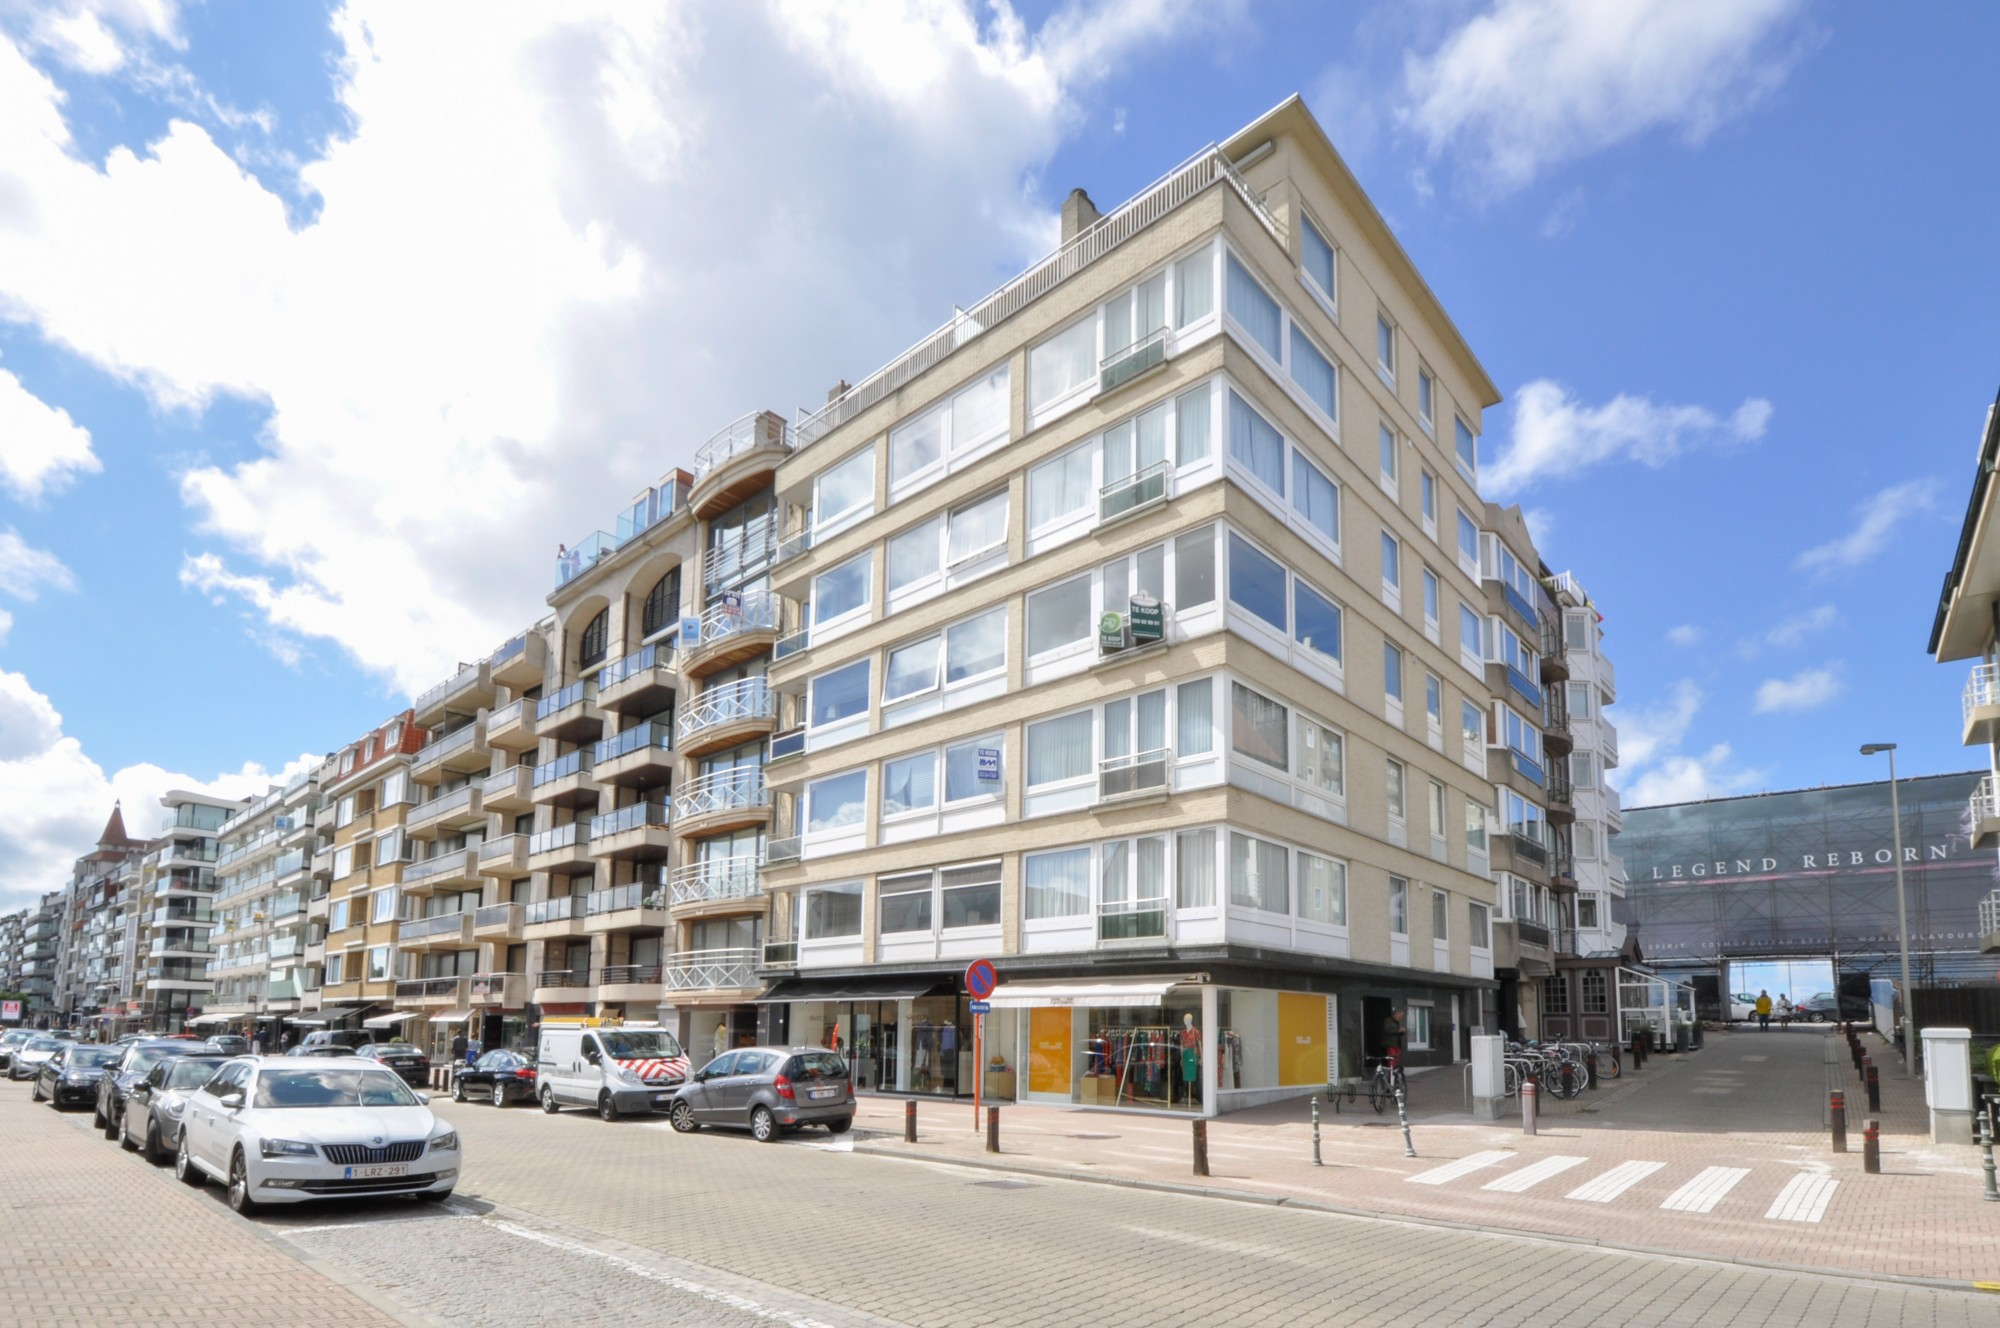 Vente Appartement 2 CH Knokke-Zoute - Appartement d'angle Kustlaan